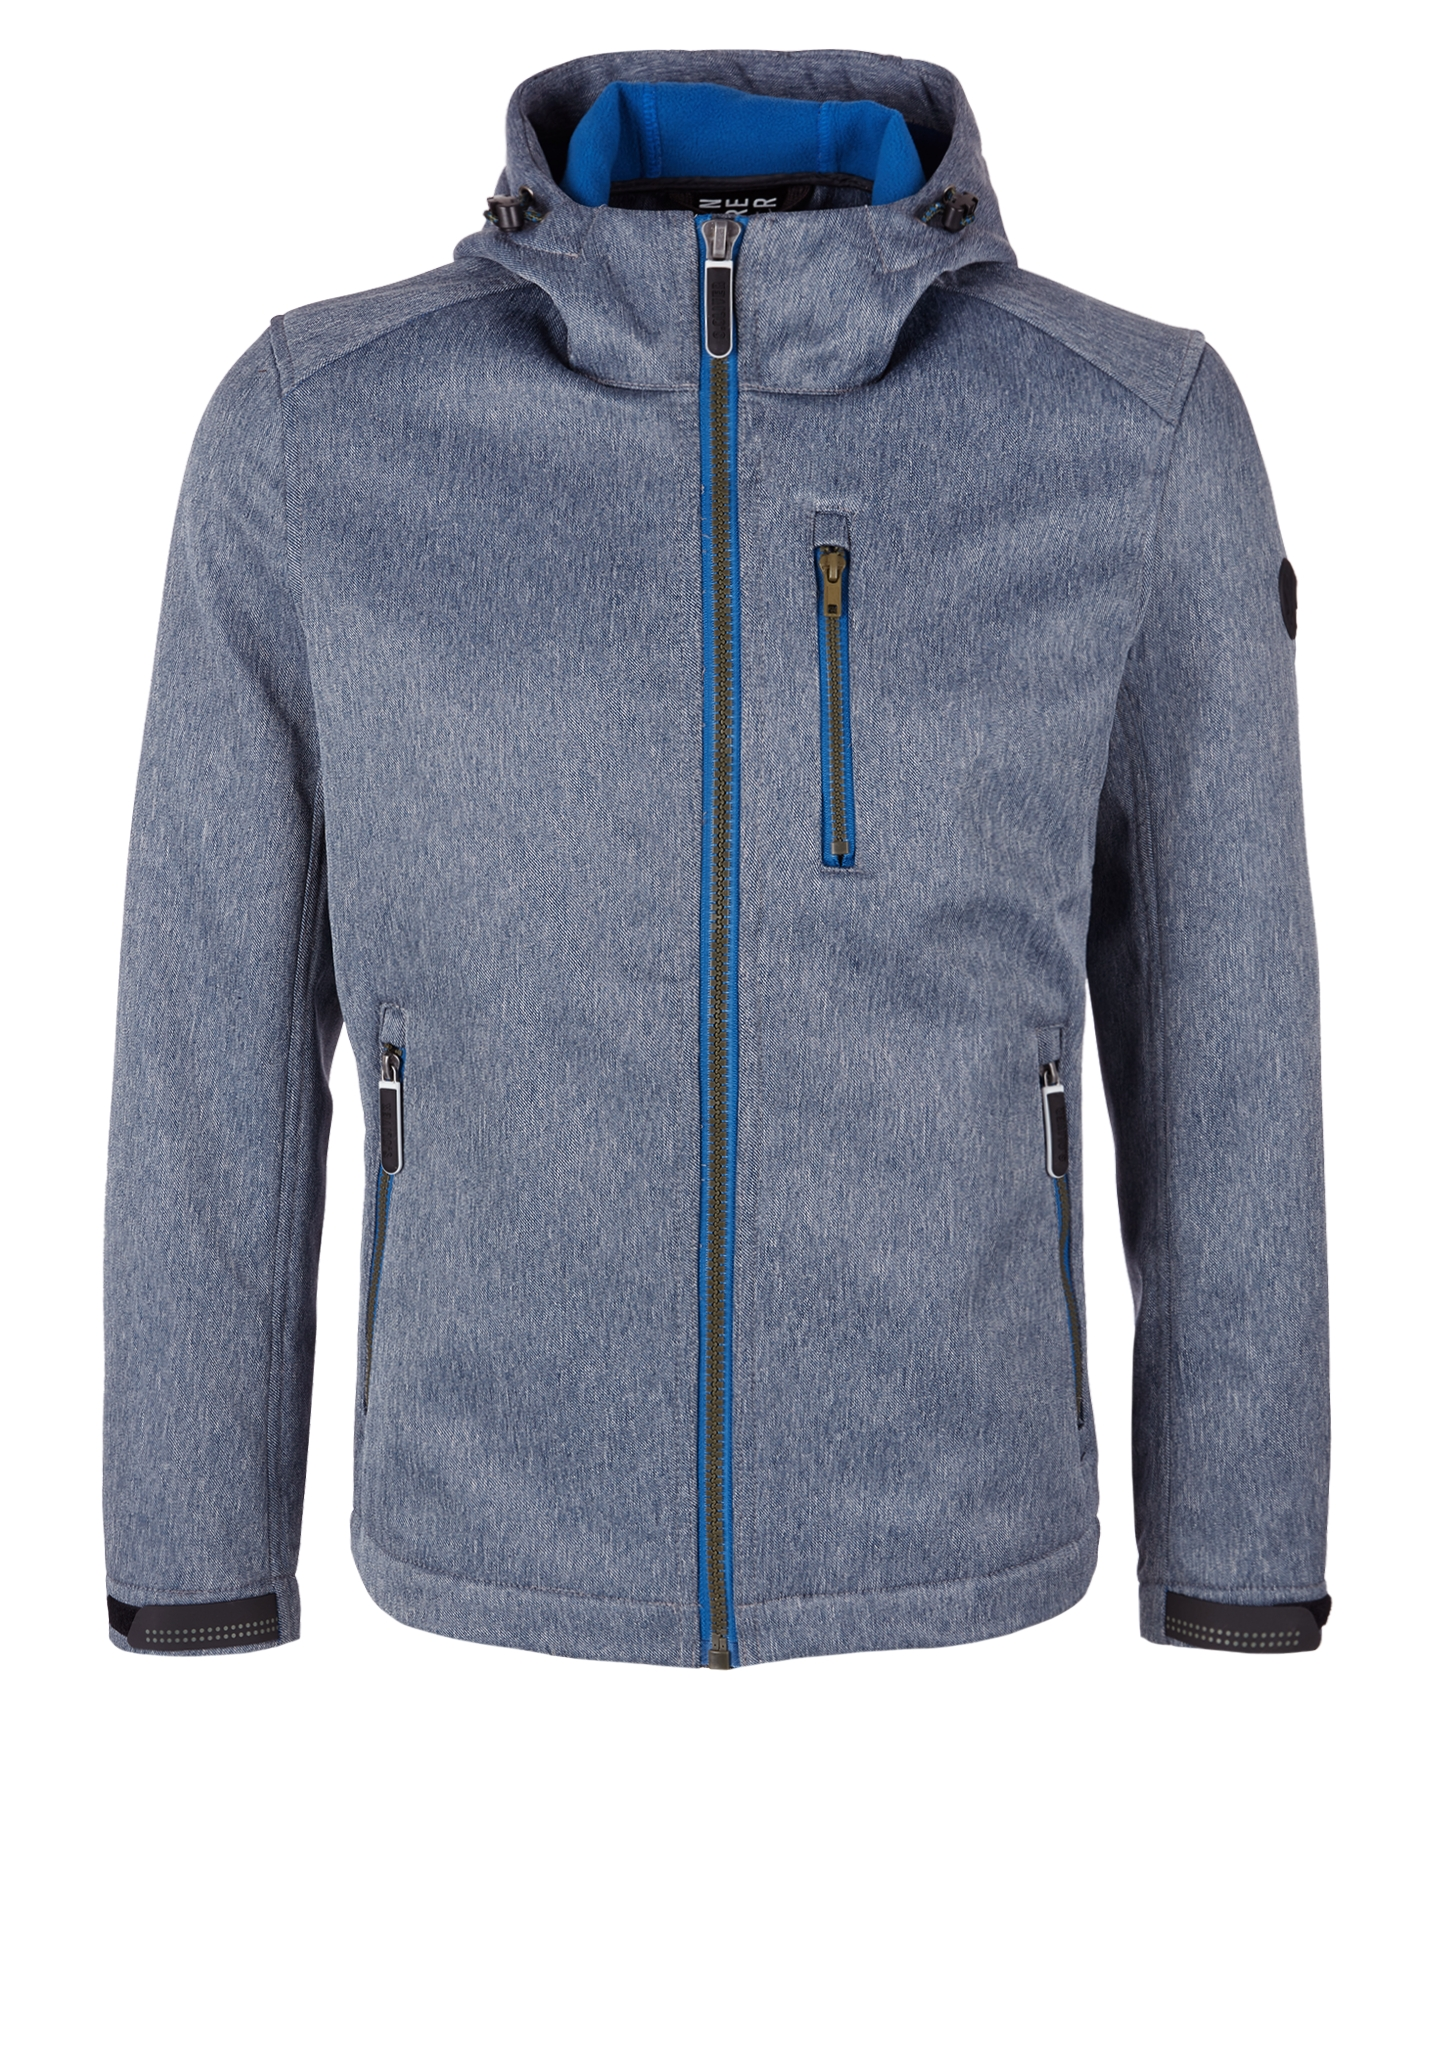 Outdoor-Jacke | Sportbekleidung | Blau | Obermaterial 100% polyester| paspelierung 100% polyester | s.Oliver